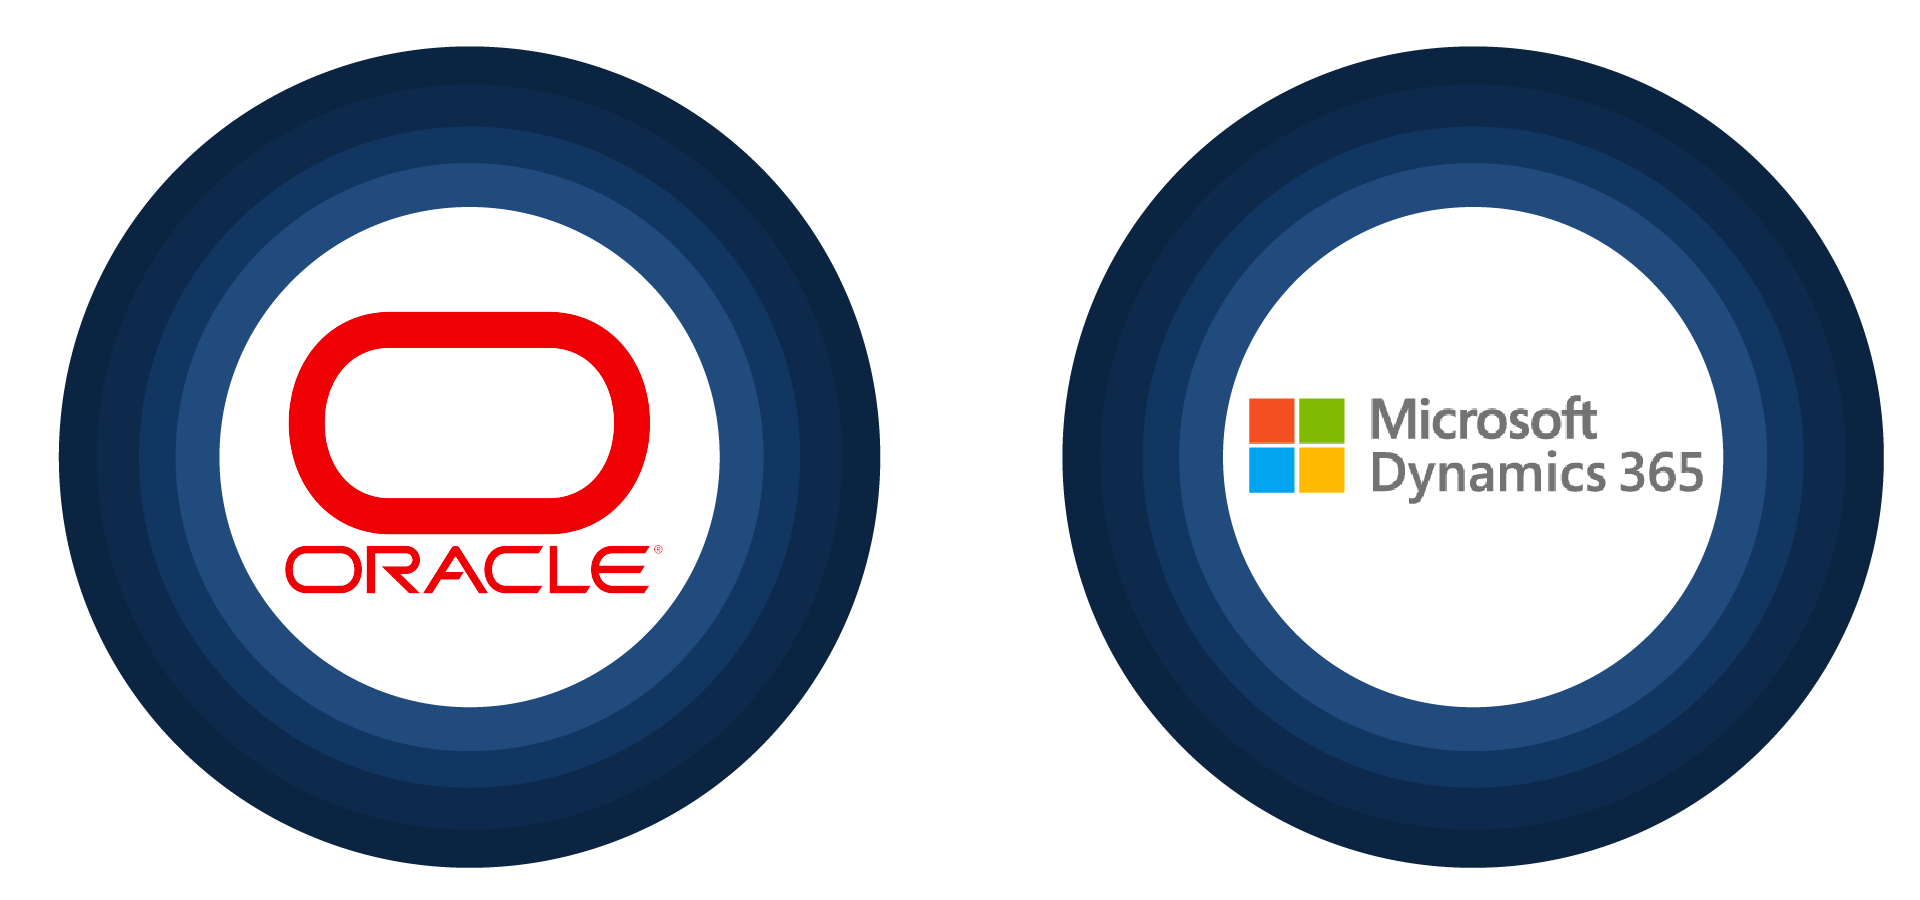 Product_Oracle-Dynamics365_V1-01